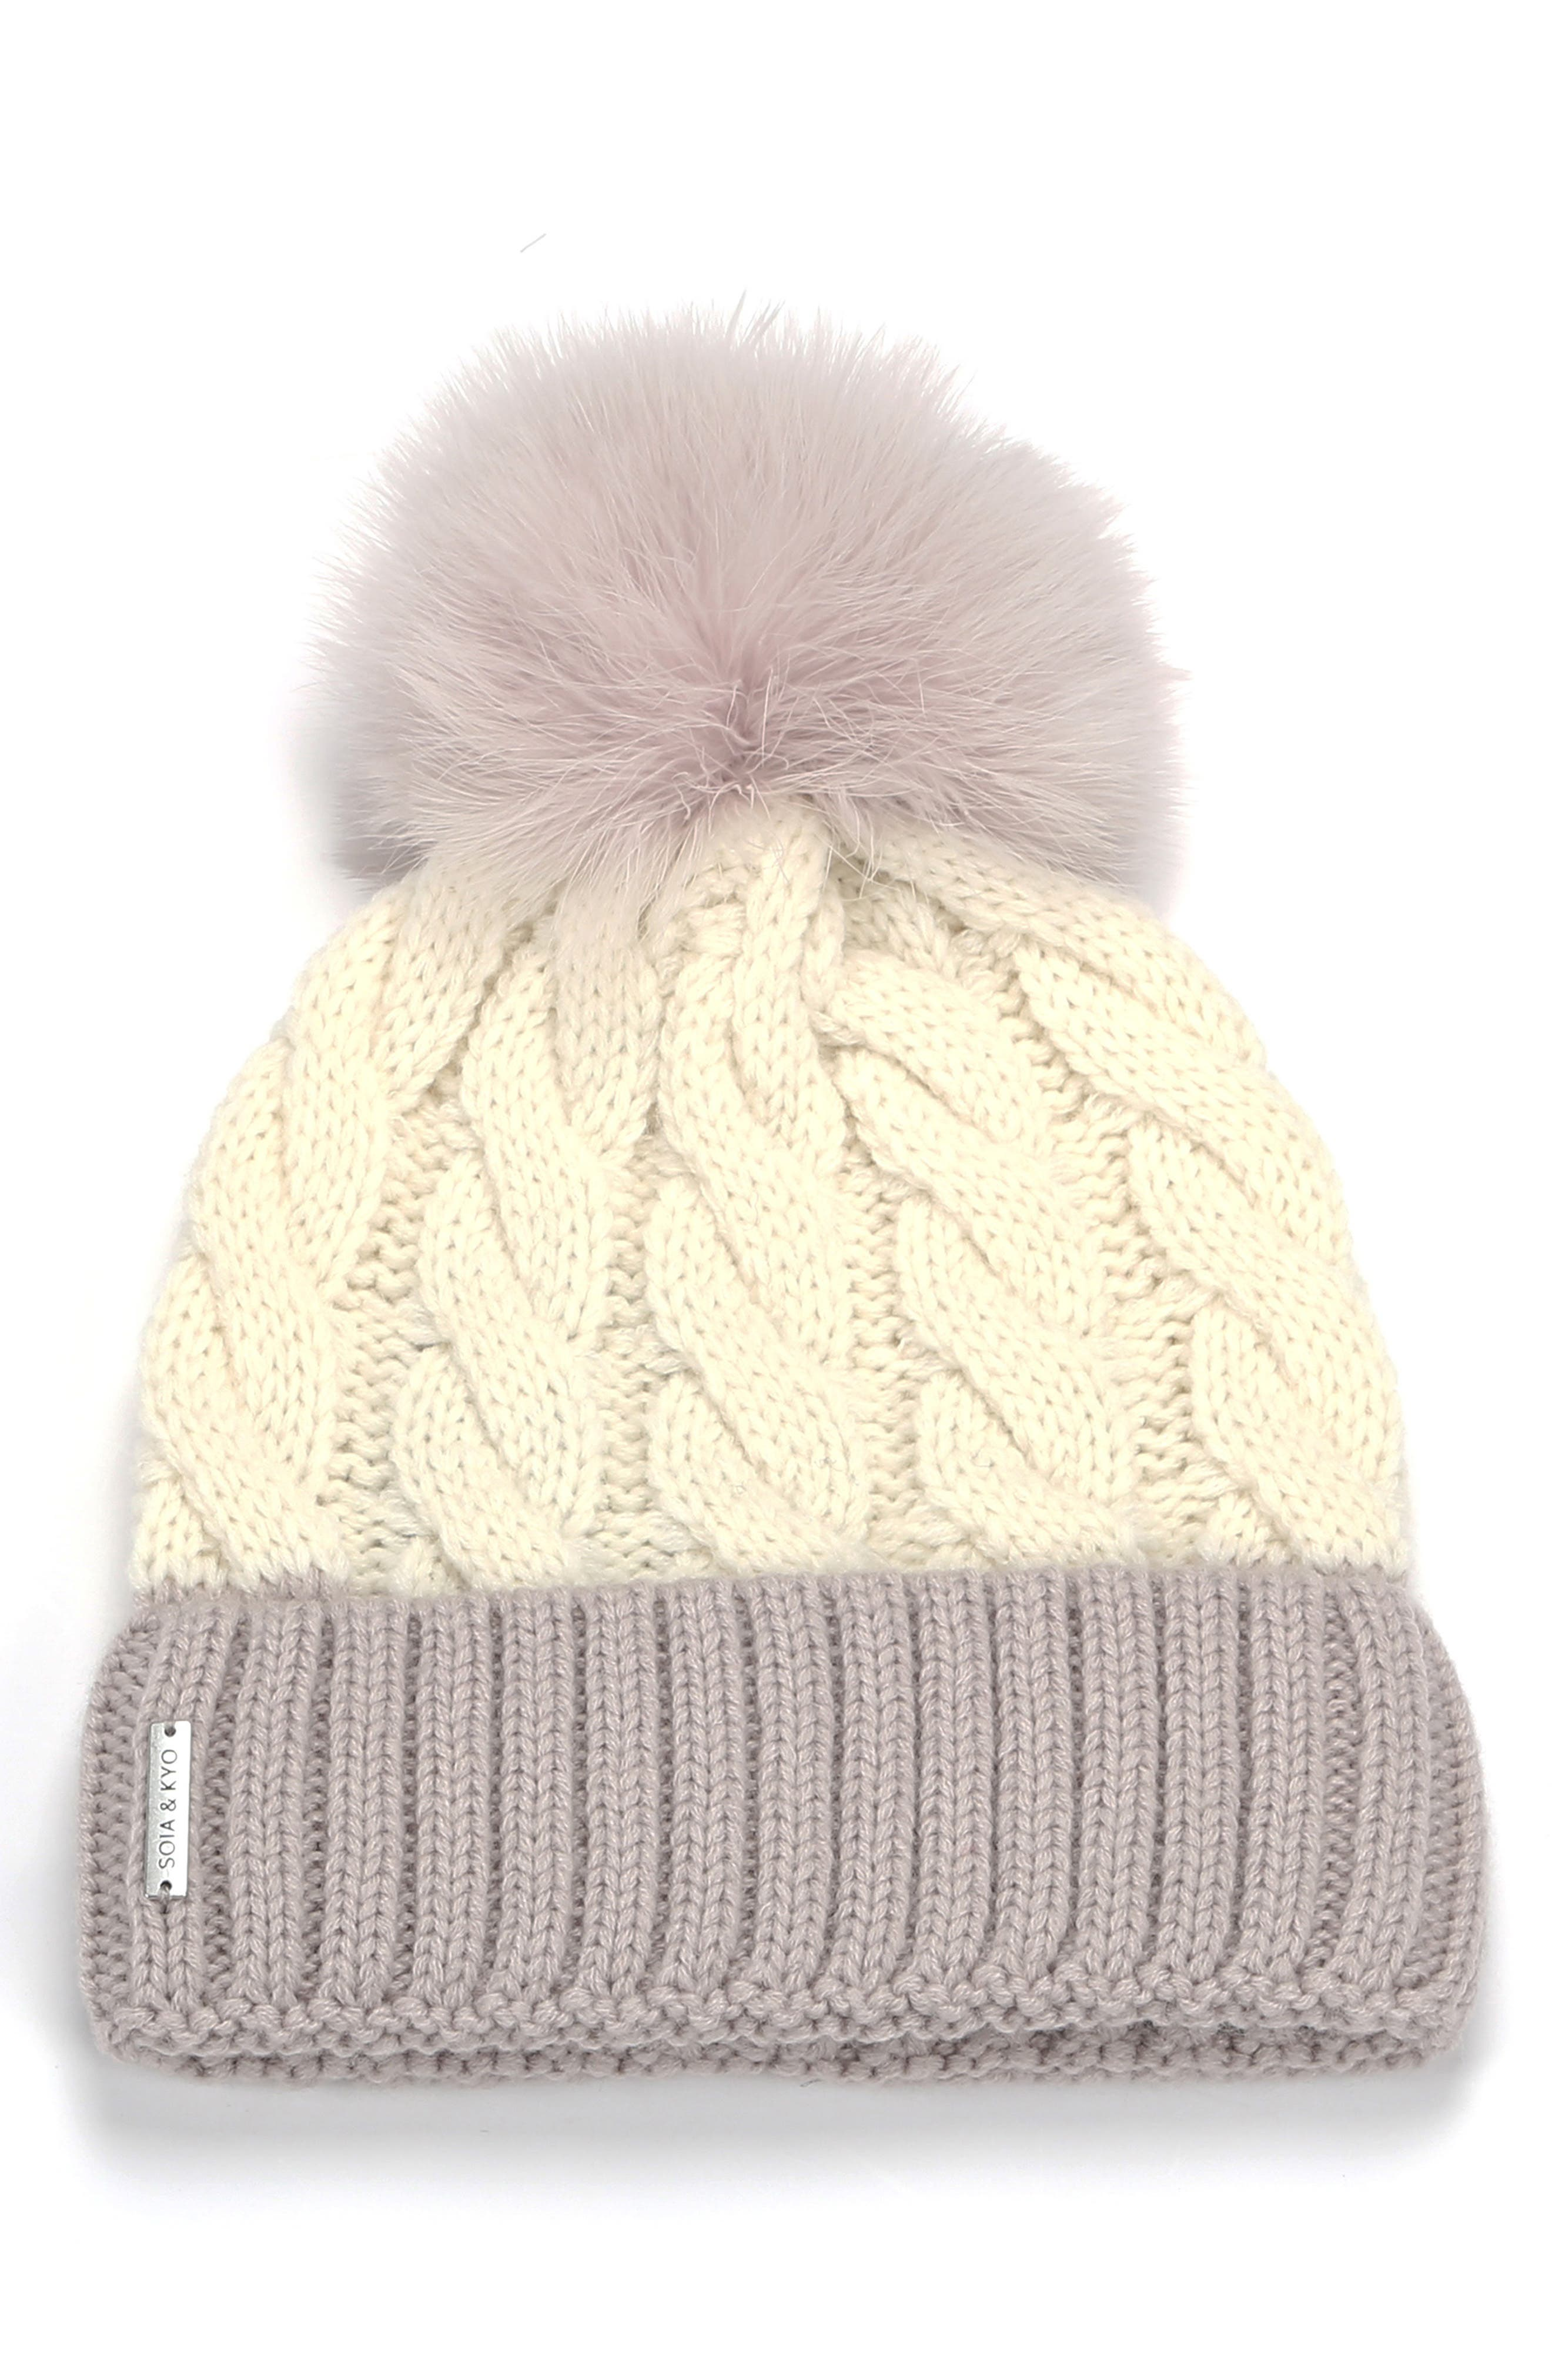 6a626924 Beanies for Women | Nordstrom